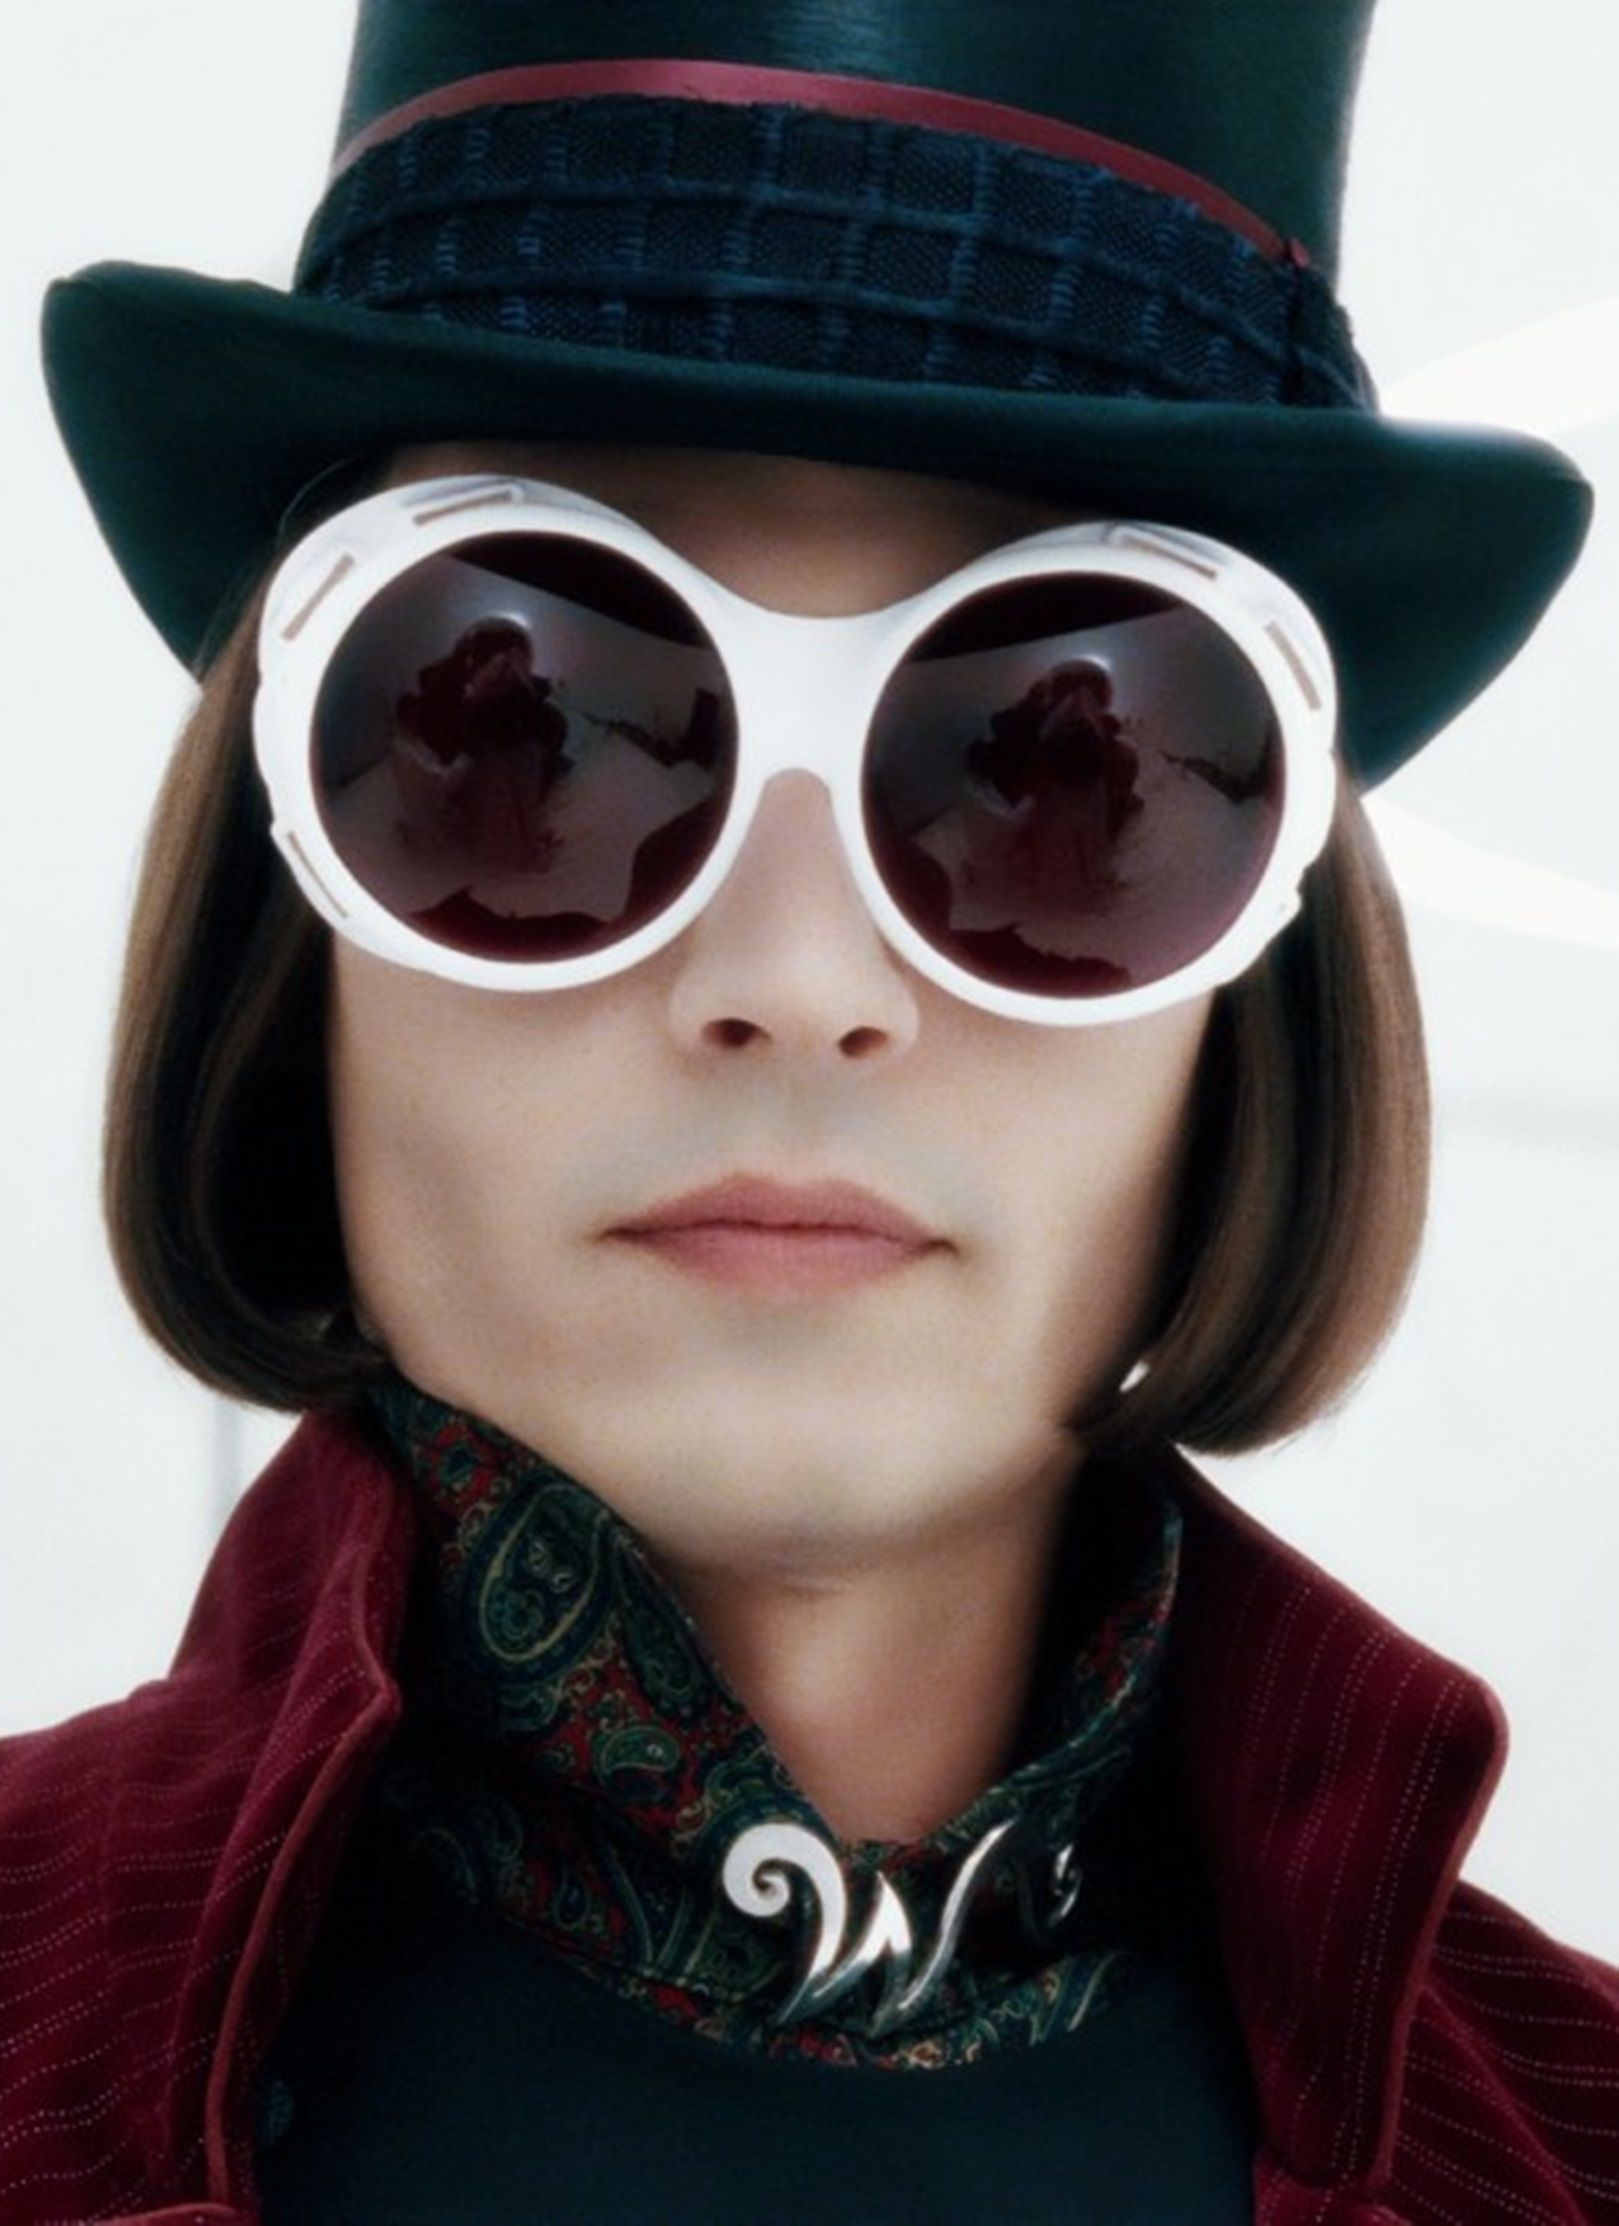 Johnny Depp as Willy Wonka in Charlie and the chocolate factory ...